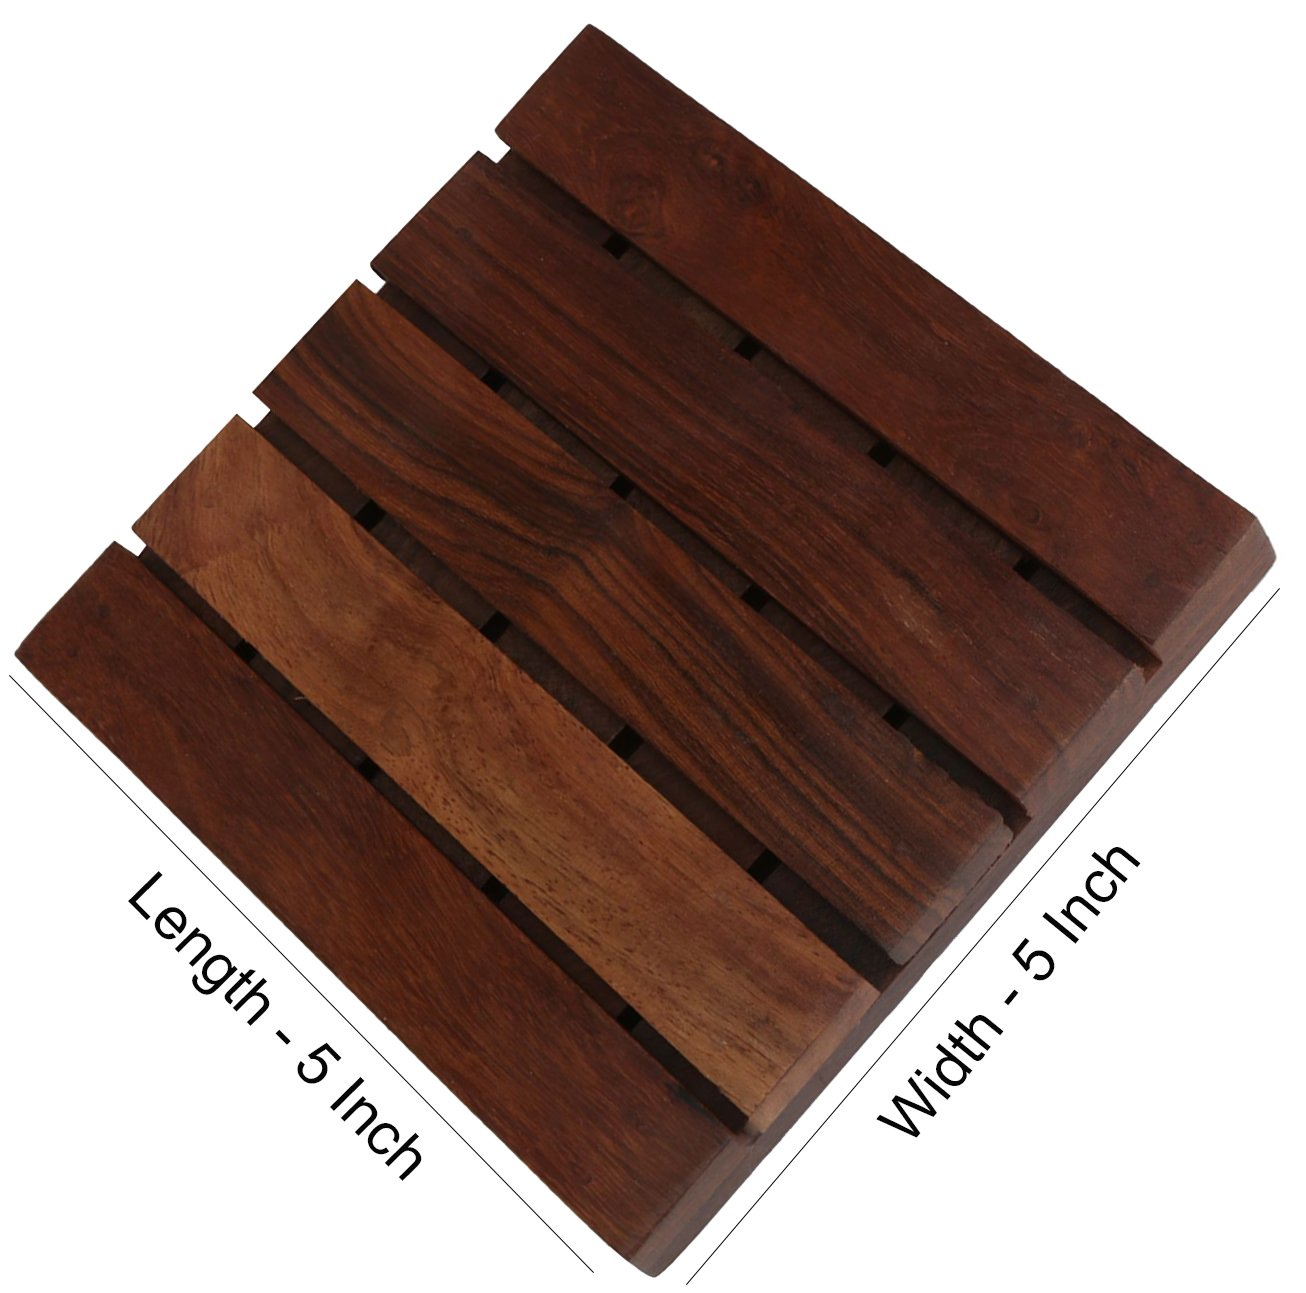 Hashcart Coasters for Drinks-Hot & Cold/Wooden Coaster Sets/Dining, Tea & Coffee Table Decorative Cocktail Coasters in Sheesham Wood | 5x5 inch | Set of 6 by Hashcart (Image #3)